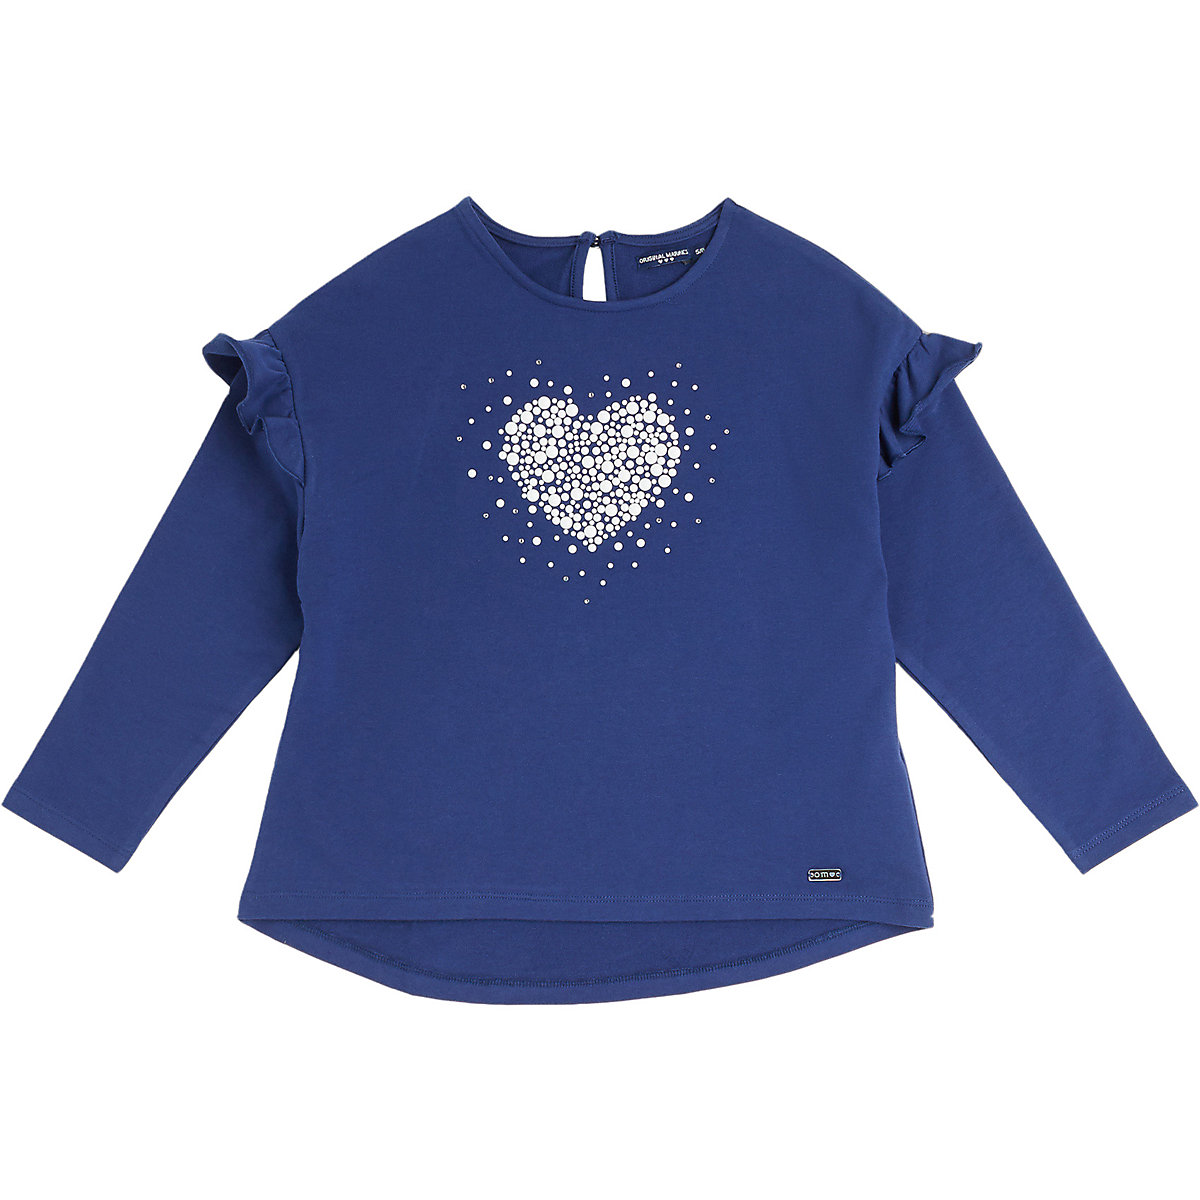 Sweaters ORIGINAL MARINES 10830358 sweatshirt hoodies for kids cardigan clothes for girls and boys MTpromo cardigan for boys kotmarkot 15508 kid clothes